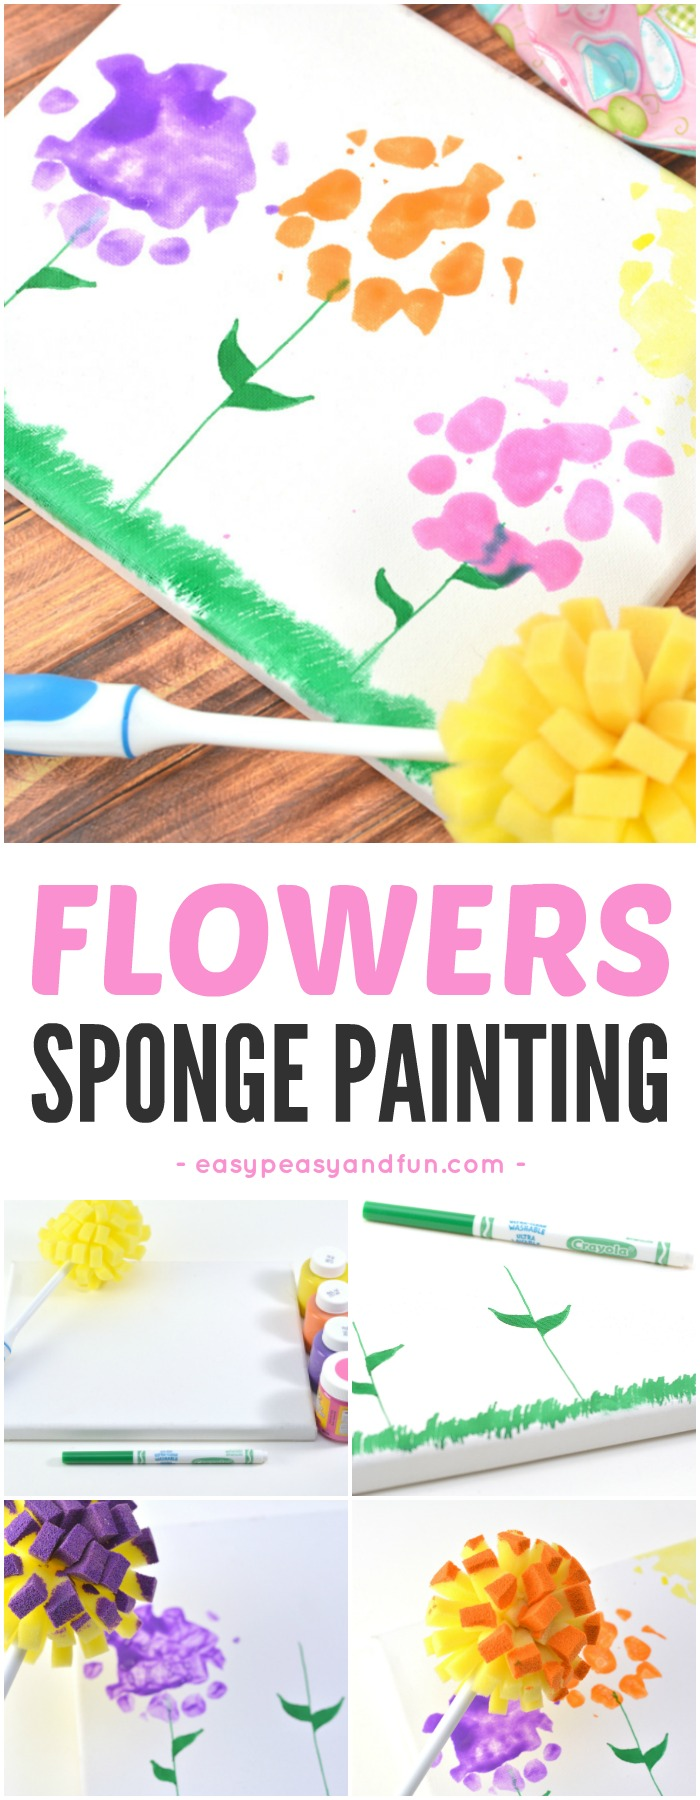 Spring Flowers Sponge Painting Canvas Art Idea for Kids #canvasart #paintingforkids #springcraftsforkids